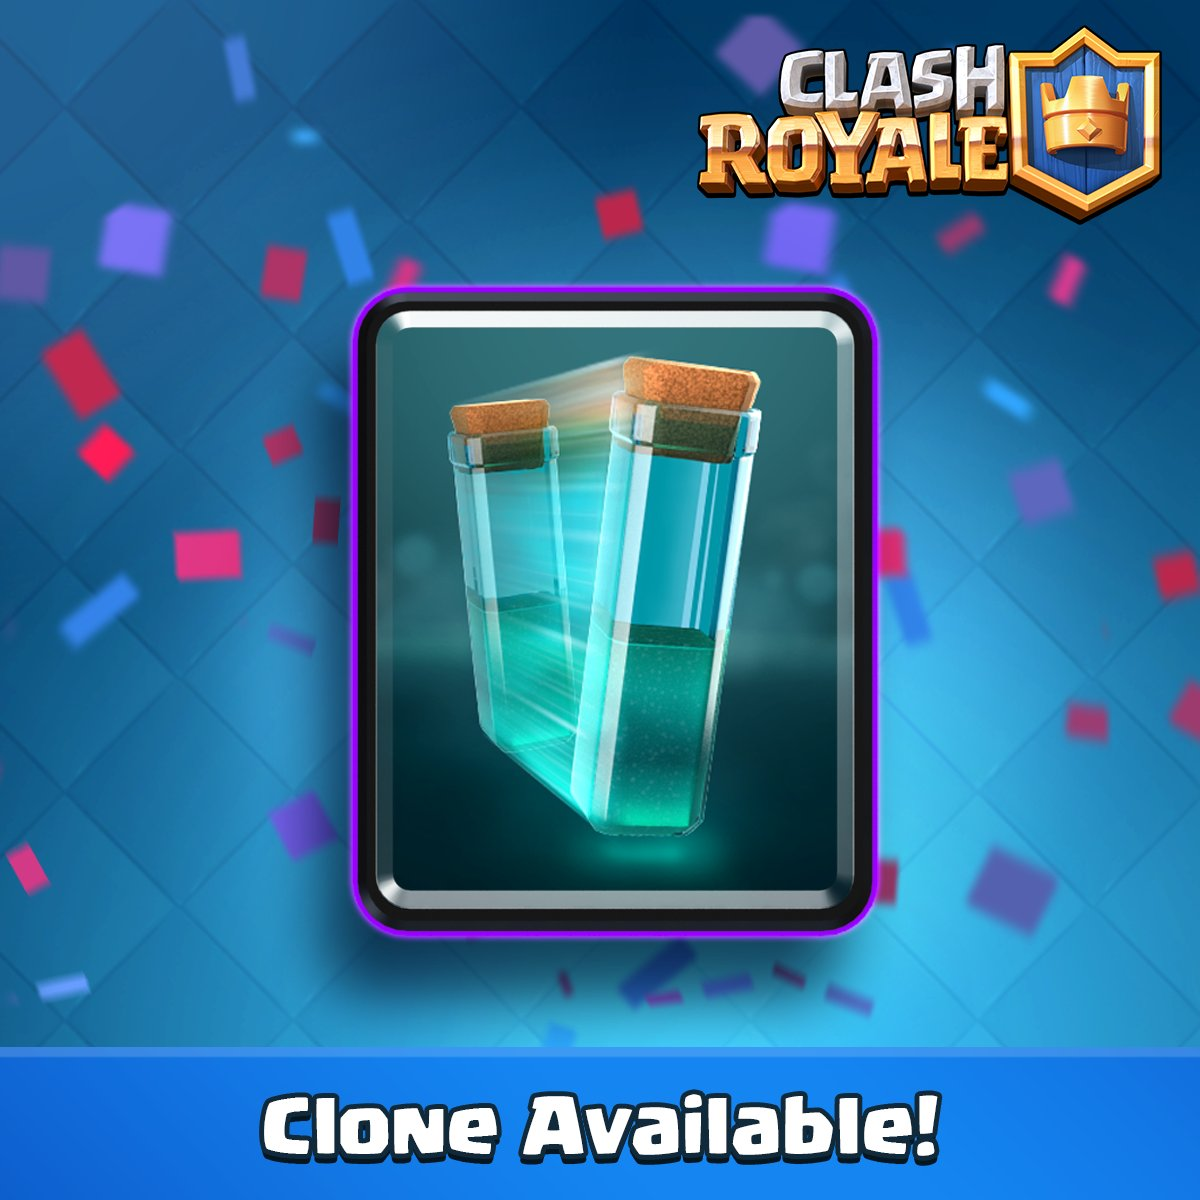 how to get clash royale account on bluestacks